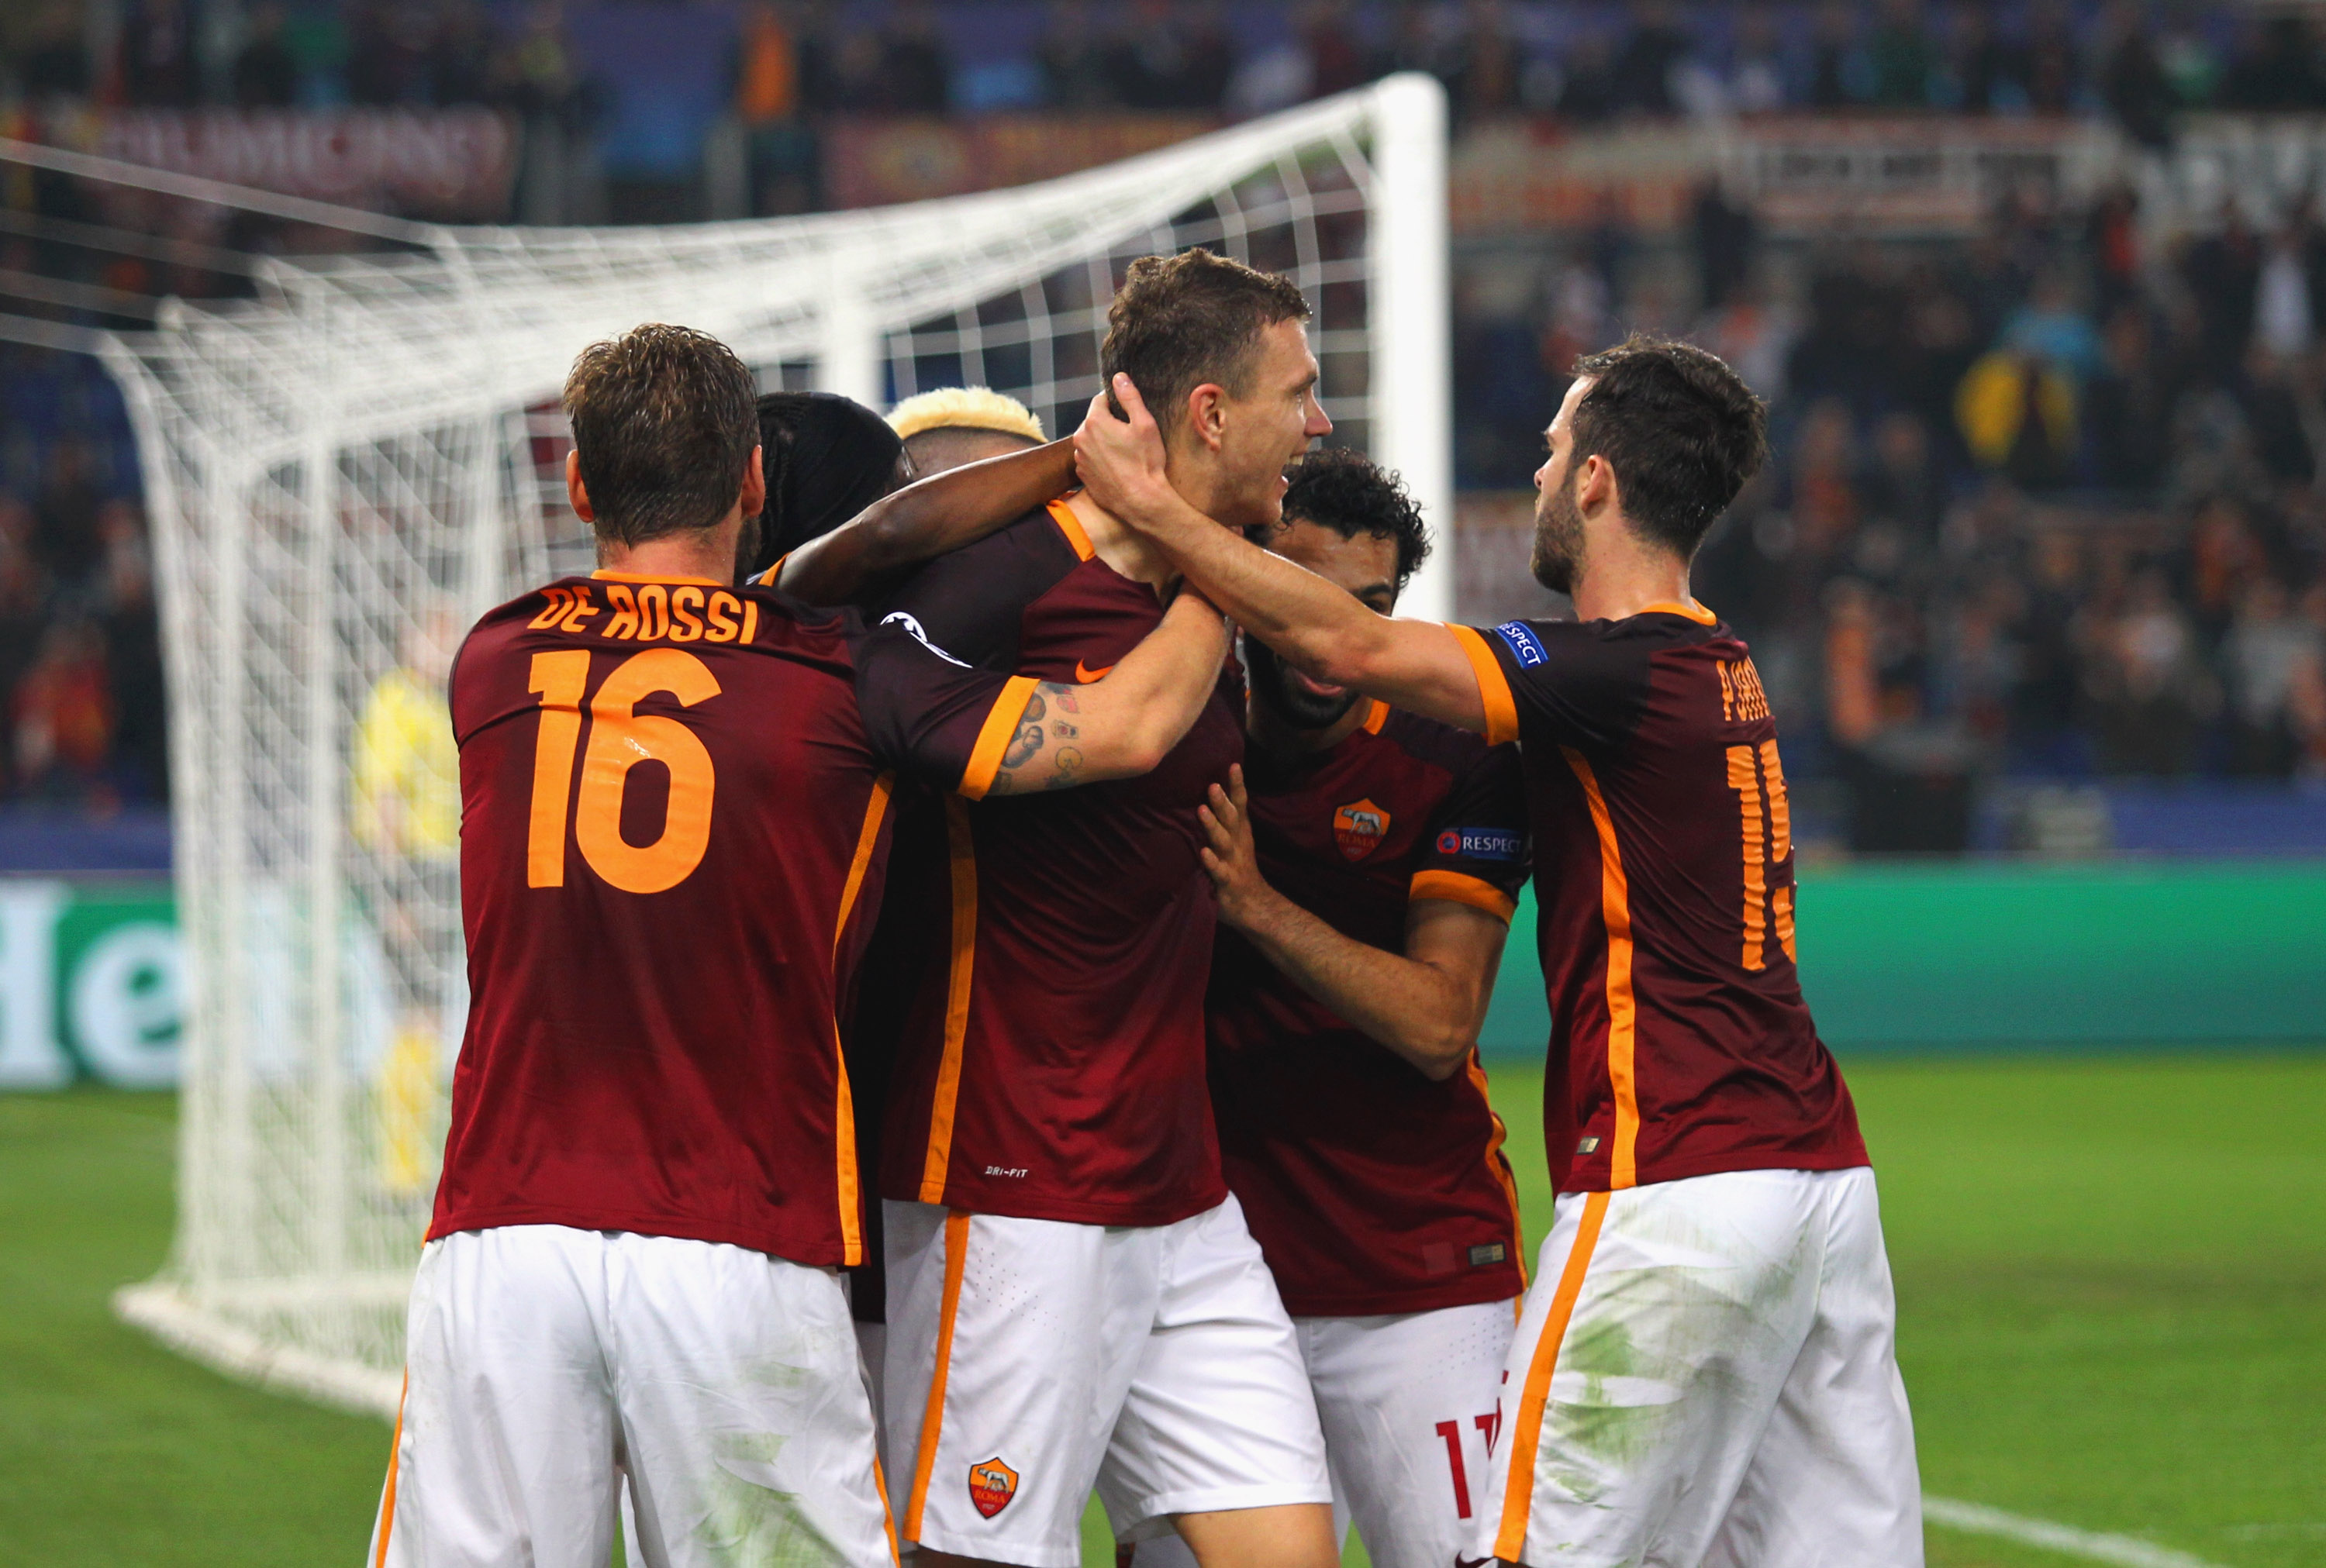 ROME, ITALY - NOVEMBER 04: Edin Dzeko with his teammates of AS Roma celebrates after scoring the team's second goal during the UEFA Champions League Group E match between AS Roma and Bayer 04 Leverkusen at Olimpico Stadium on November 4, 2015 in Rome, Italy. (Photo by Paolo Bruno/Getty Images)